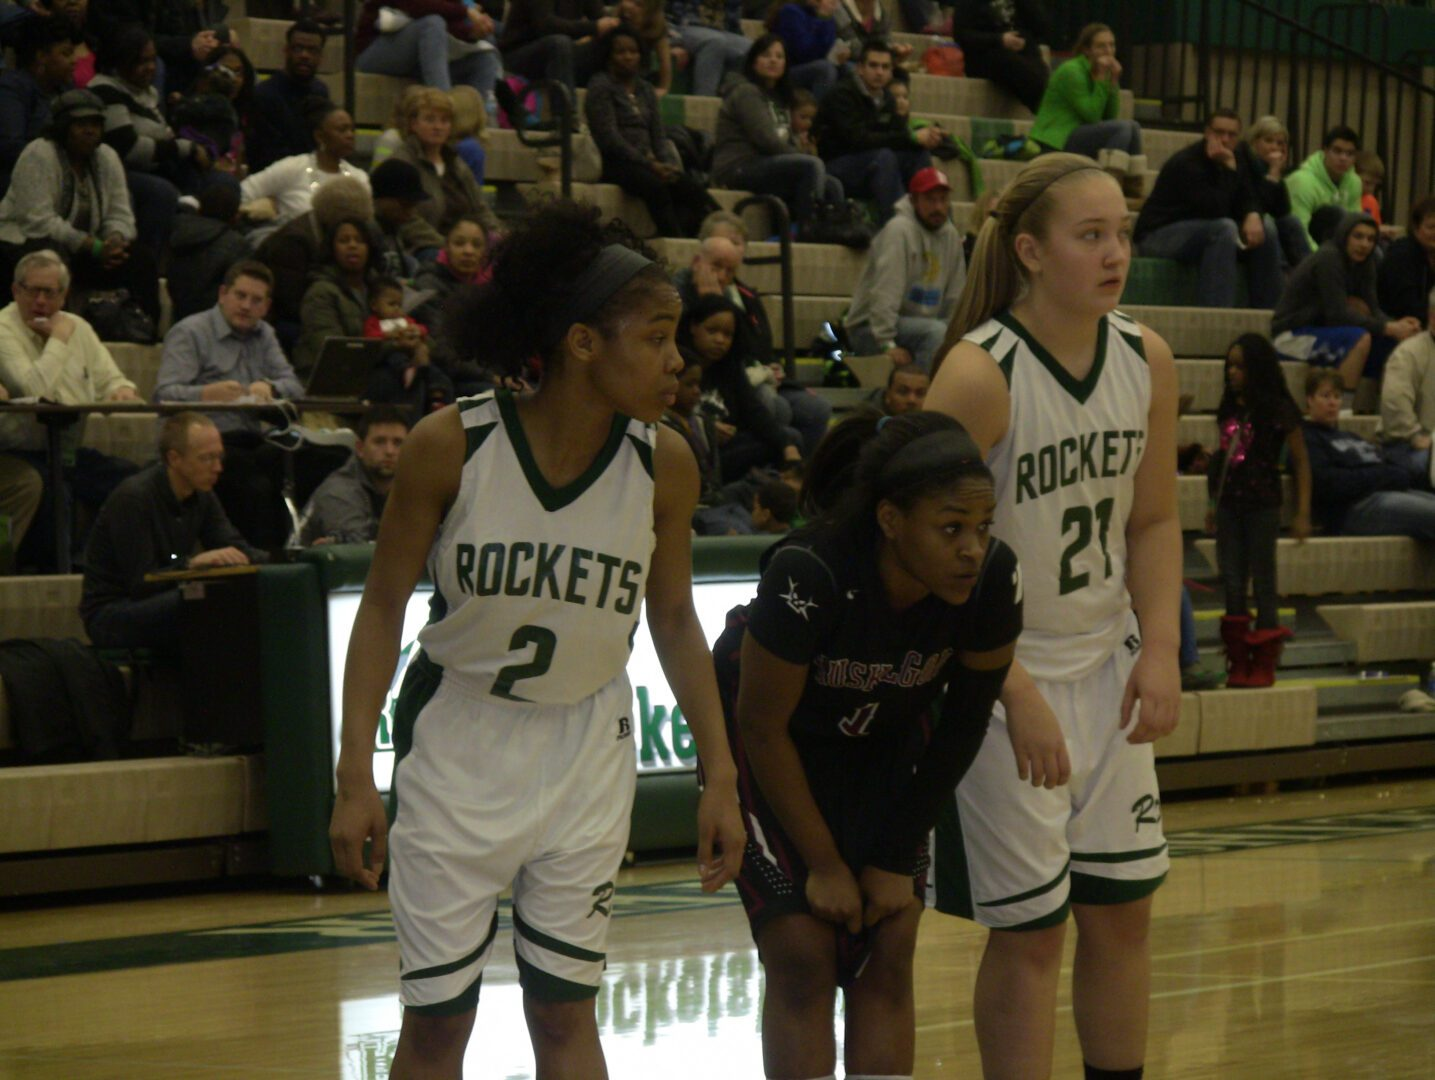 VIDEO: Taylor Craymer shows top skills for Grand Haven, Muskegon's Mardrekia Cook gives third-quarter display in Class A district kickoff